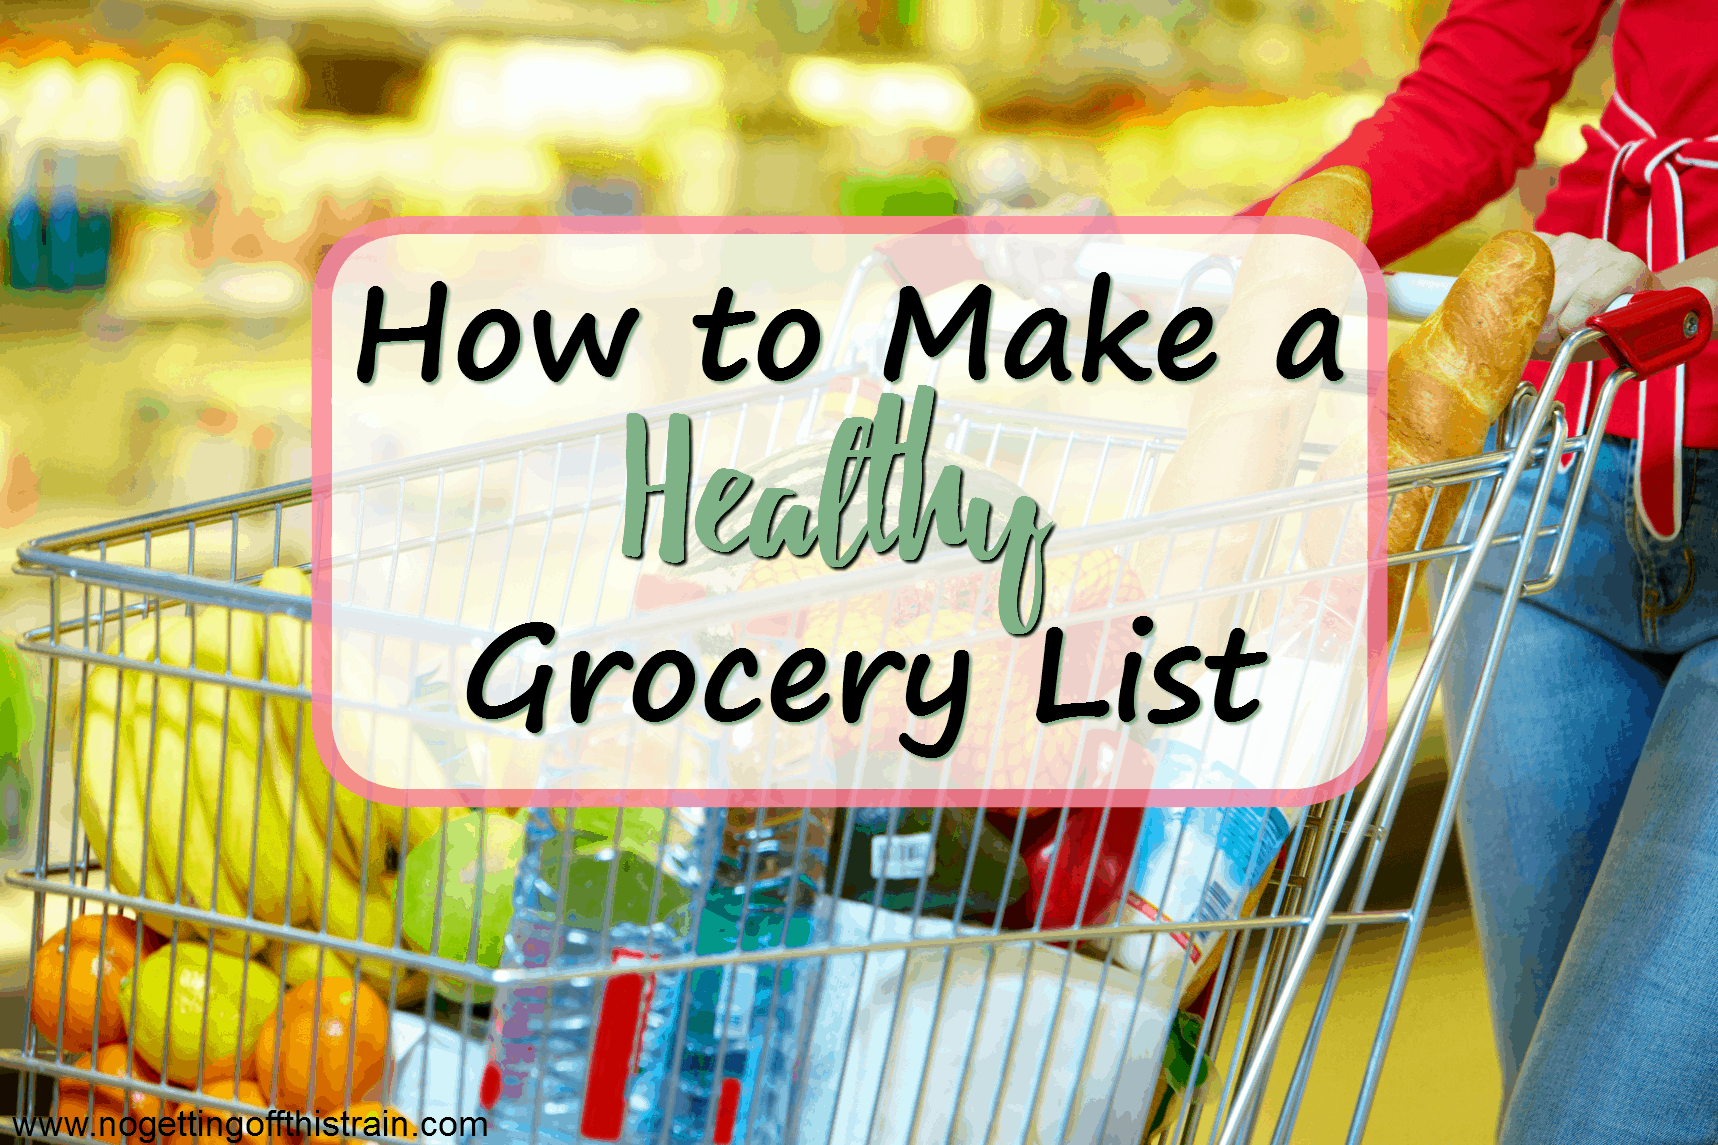 How to Make a Healthy Grocery List